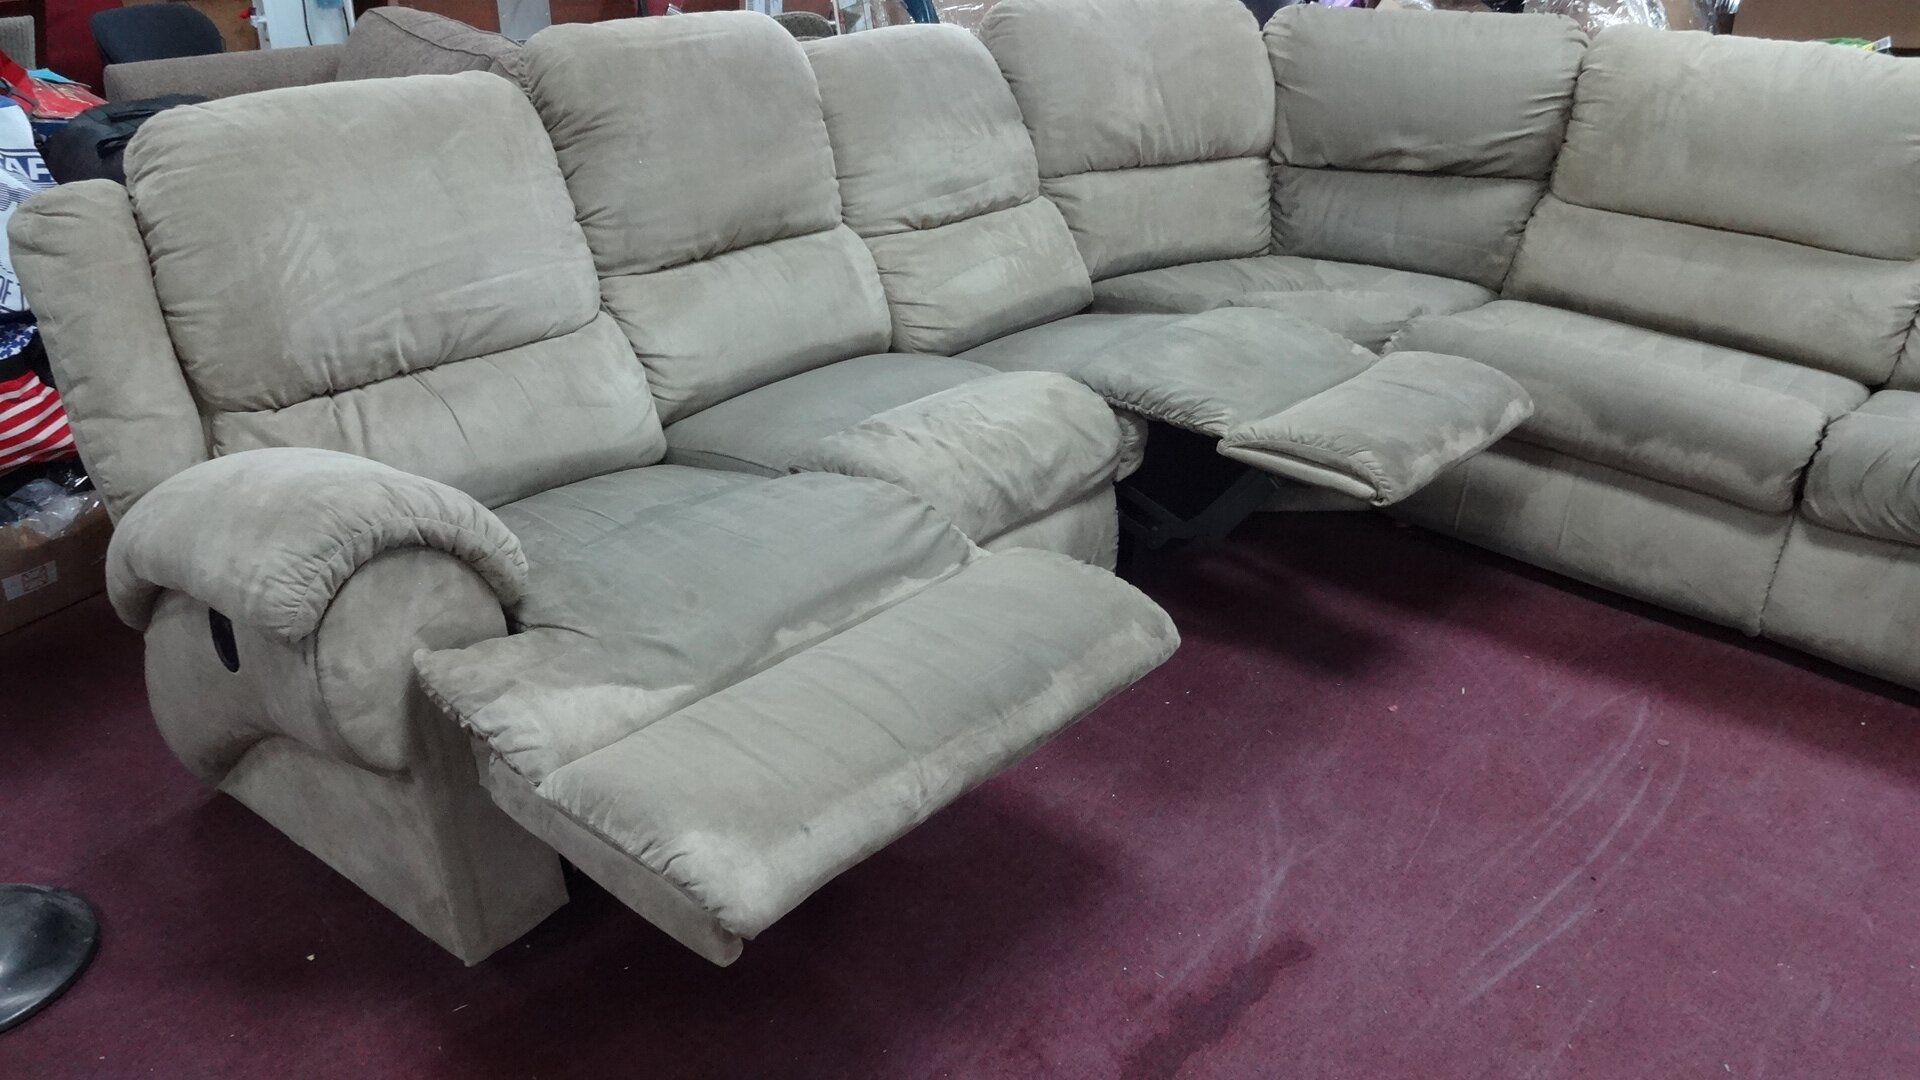 Recliner Sales at Lazy Boy | Lazy Boy Clearance | Lazyboy Outlet